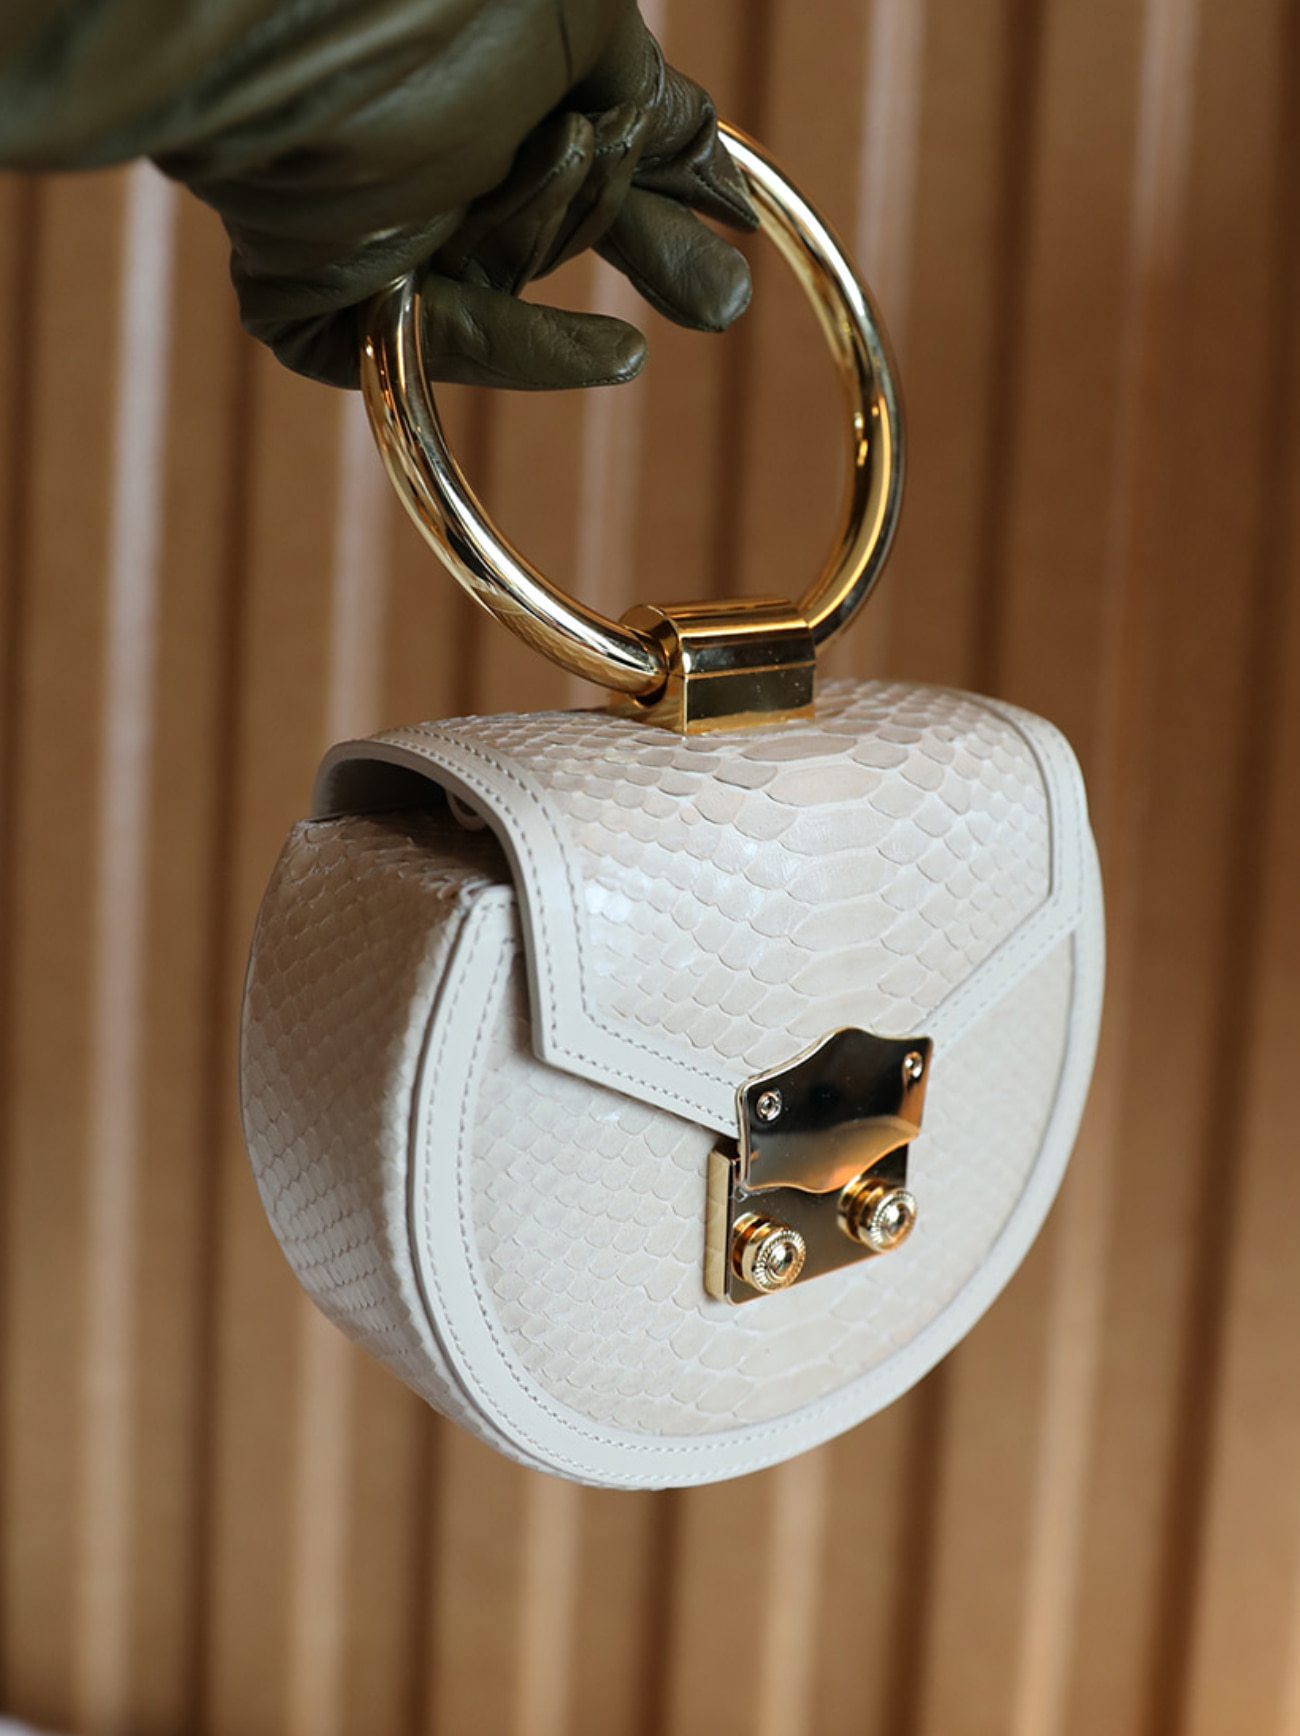 Myeyeko Exclusive Line - LOVE Madelein Bag 마들렌백 / BEIGE PYTHON